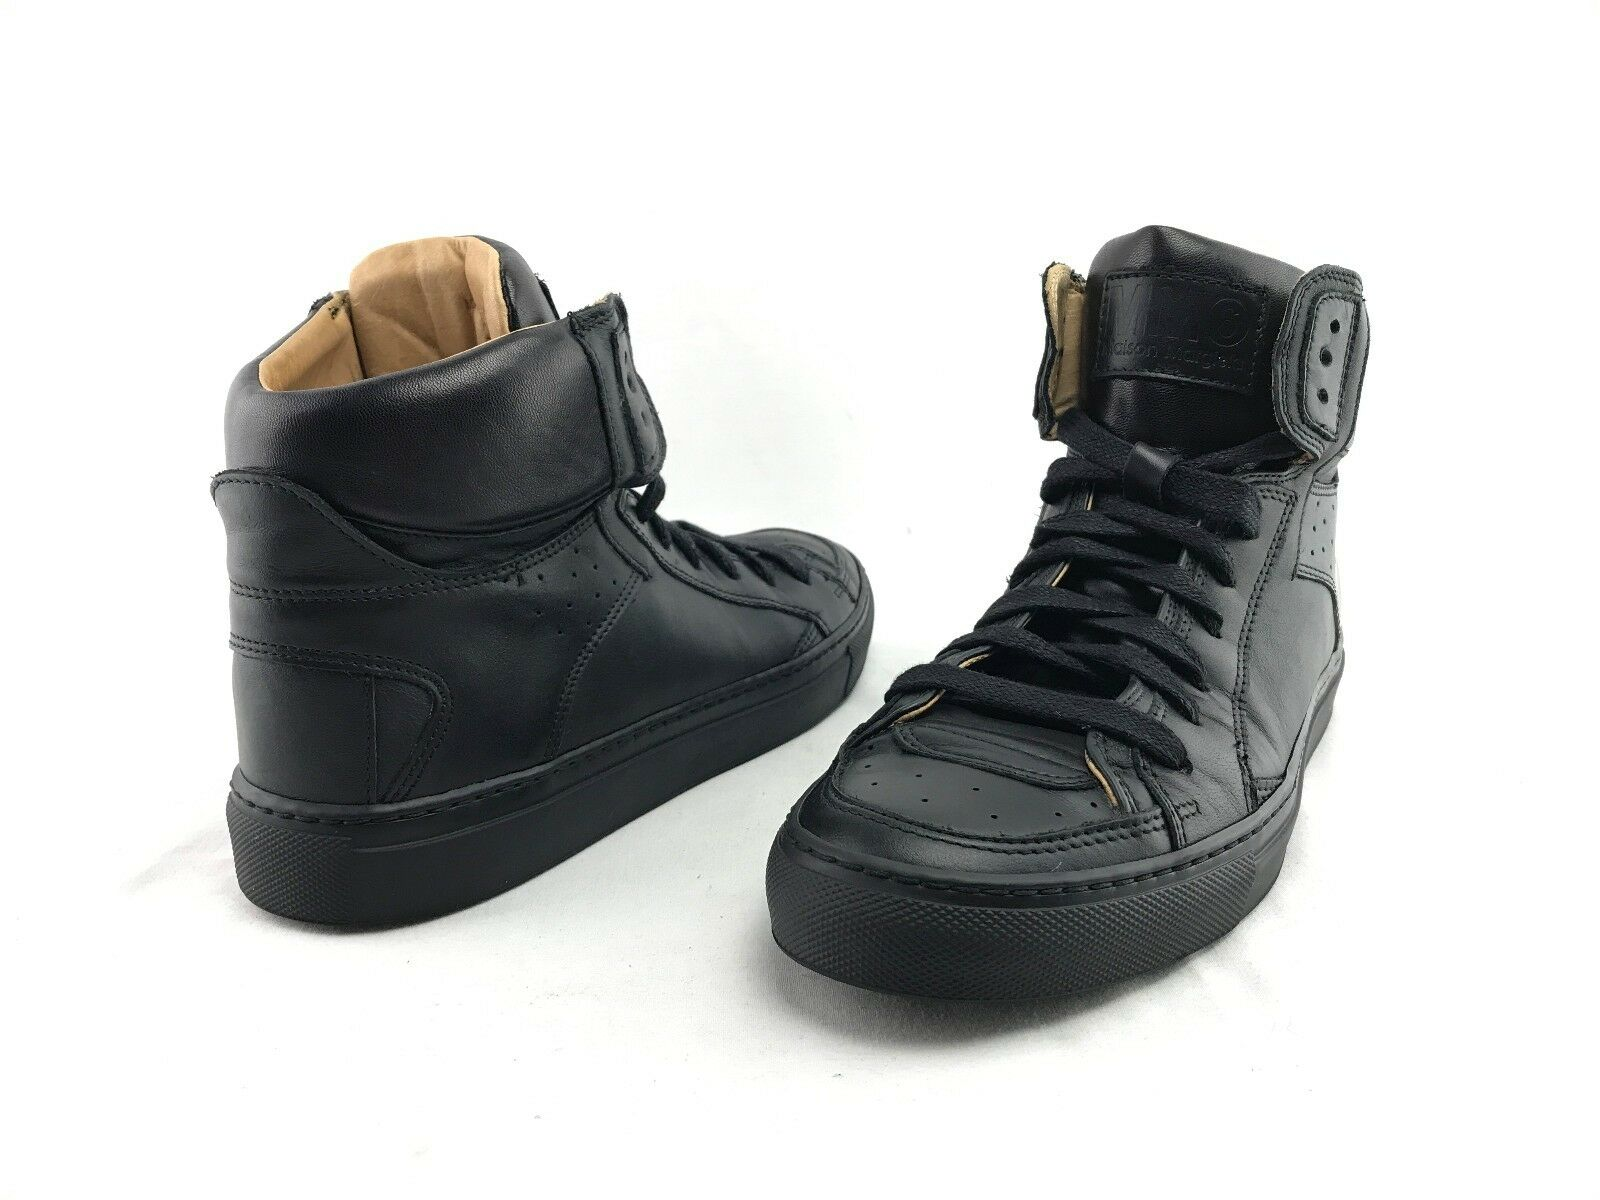 MM6 MARGIELA KC Black Black Black Leather Perforated High Top Lace Up Sneakers EUR 38  A414 e06142